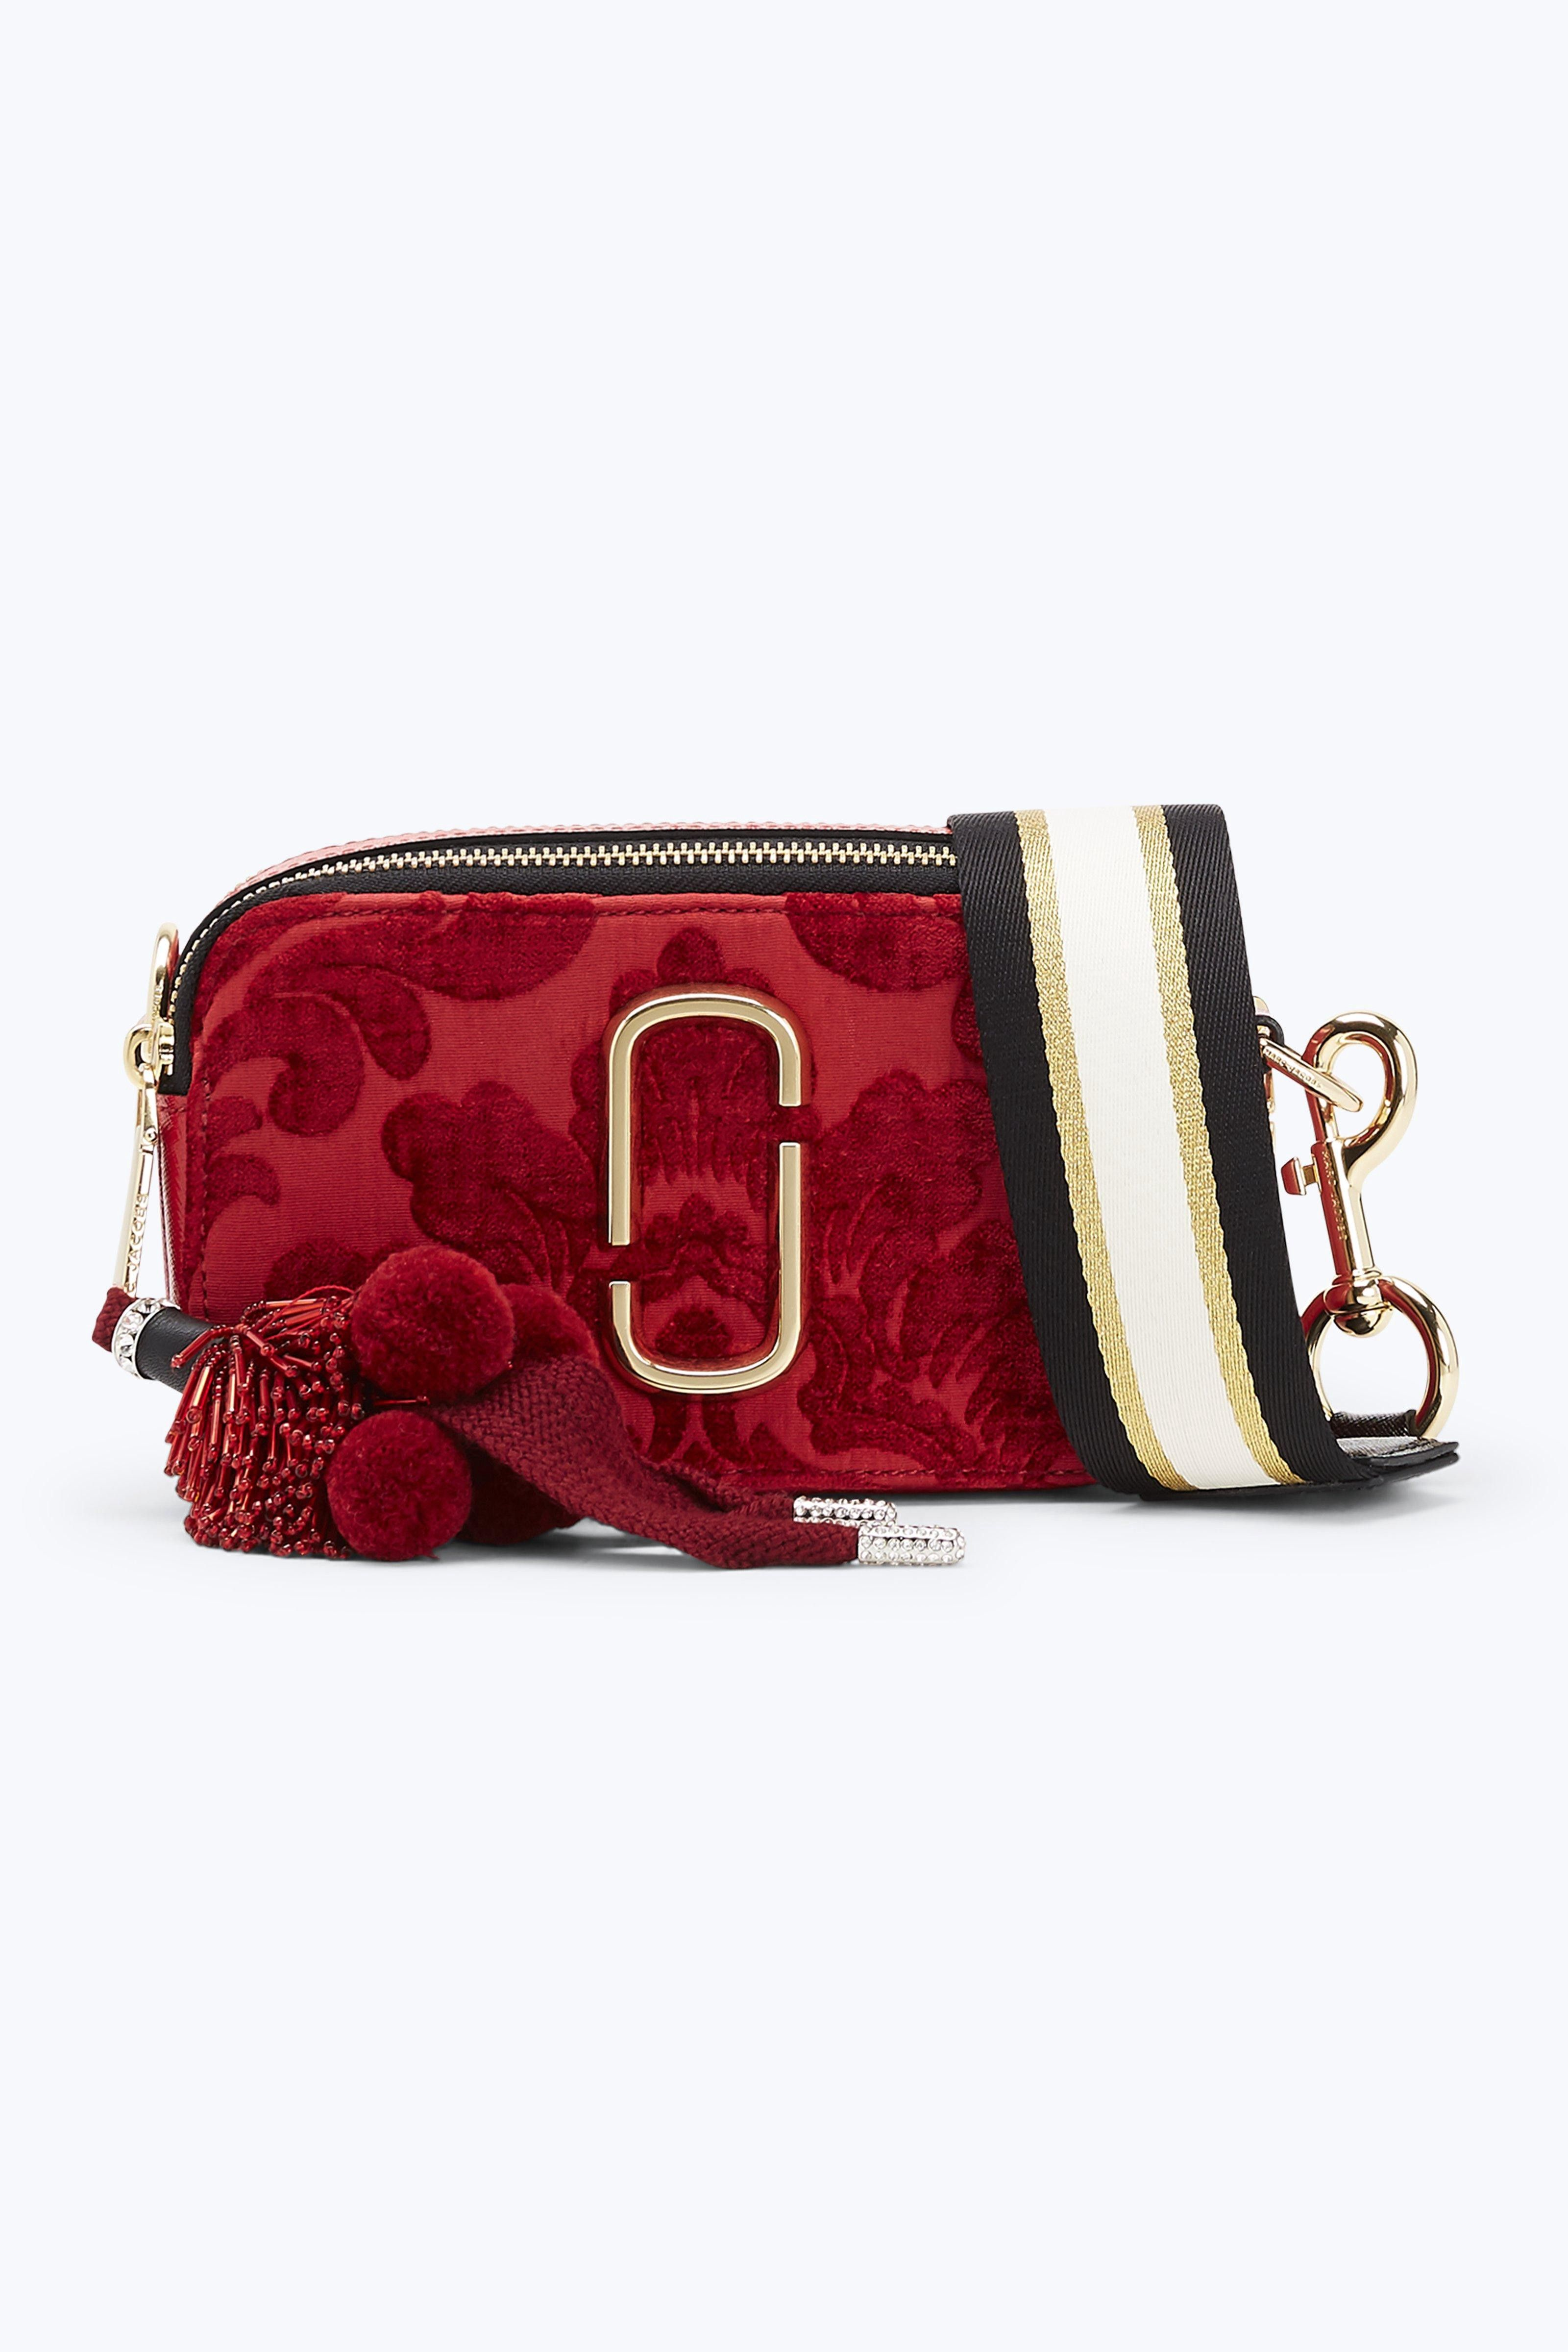 2031783043e51 MARC JACOBS Damask Snapshot Small Camera Bag.  marcjacobs  bags ...